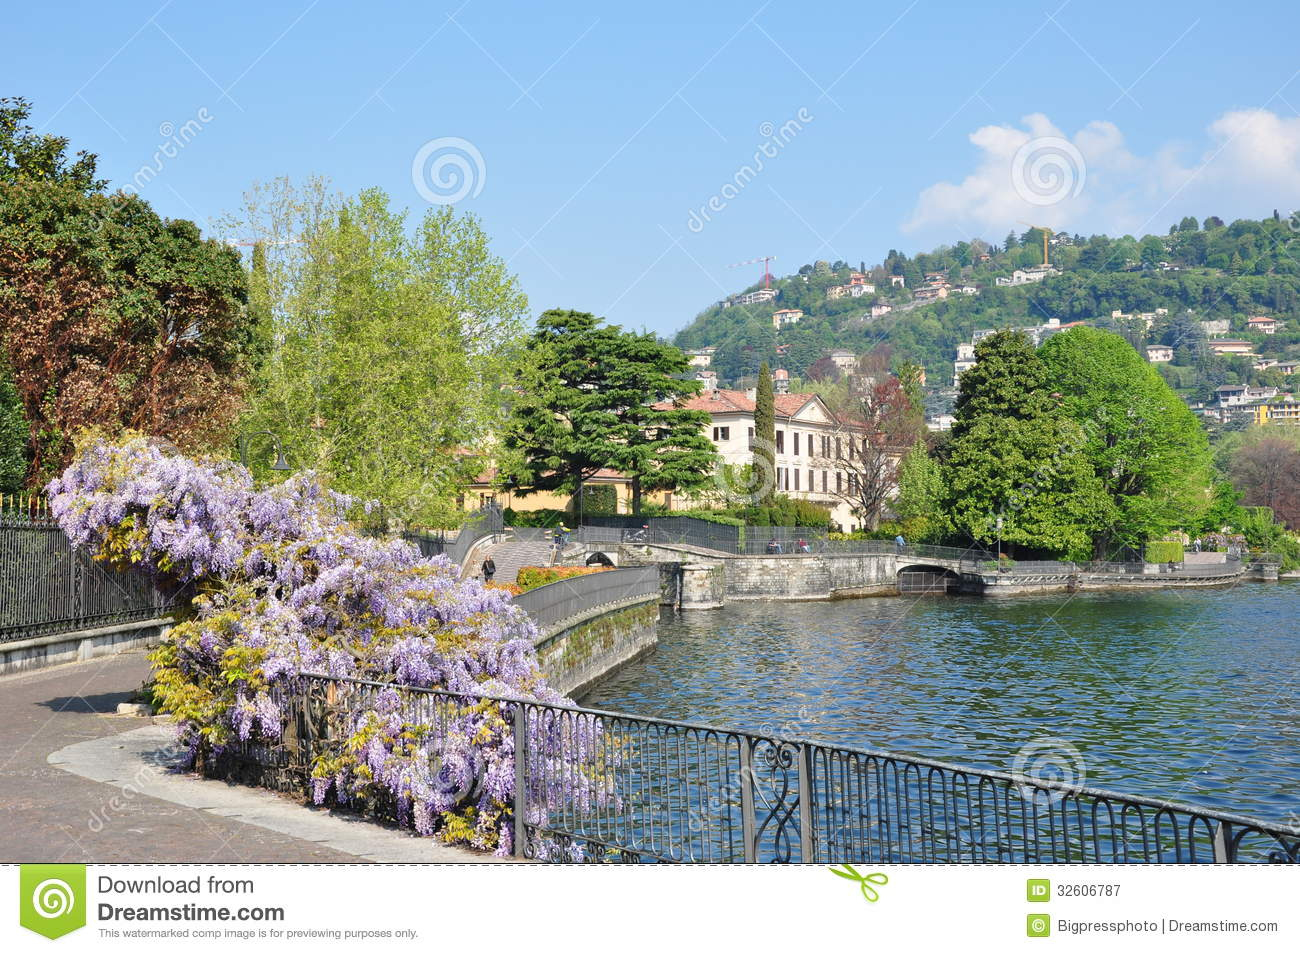 The city of Como On the lake the path with villas on lake Como Italy.